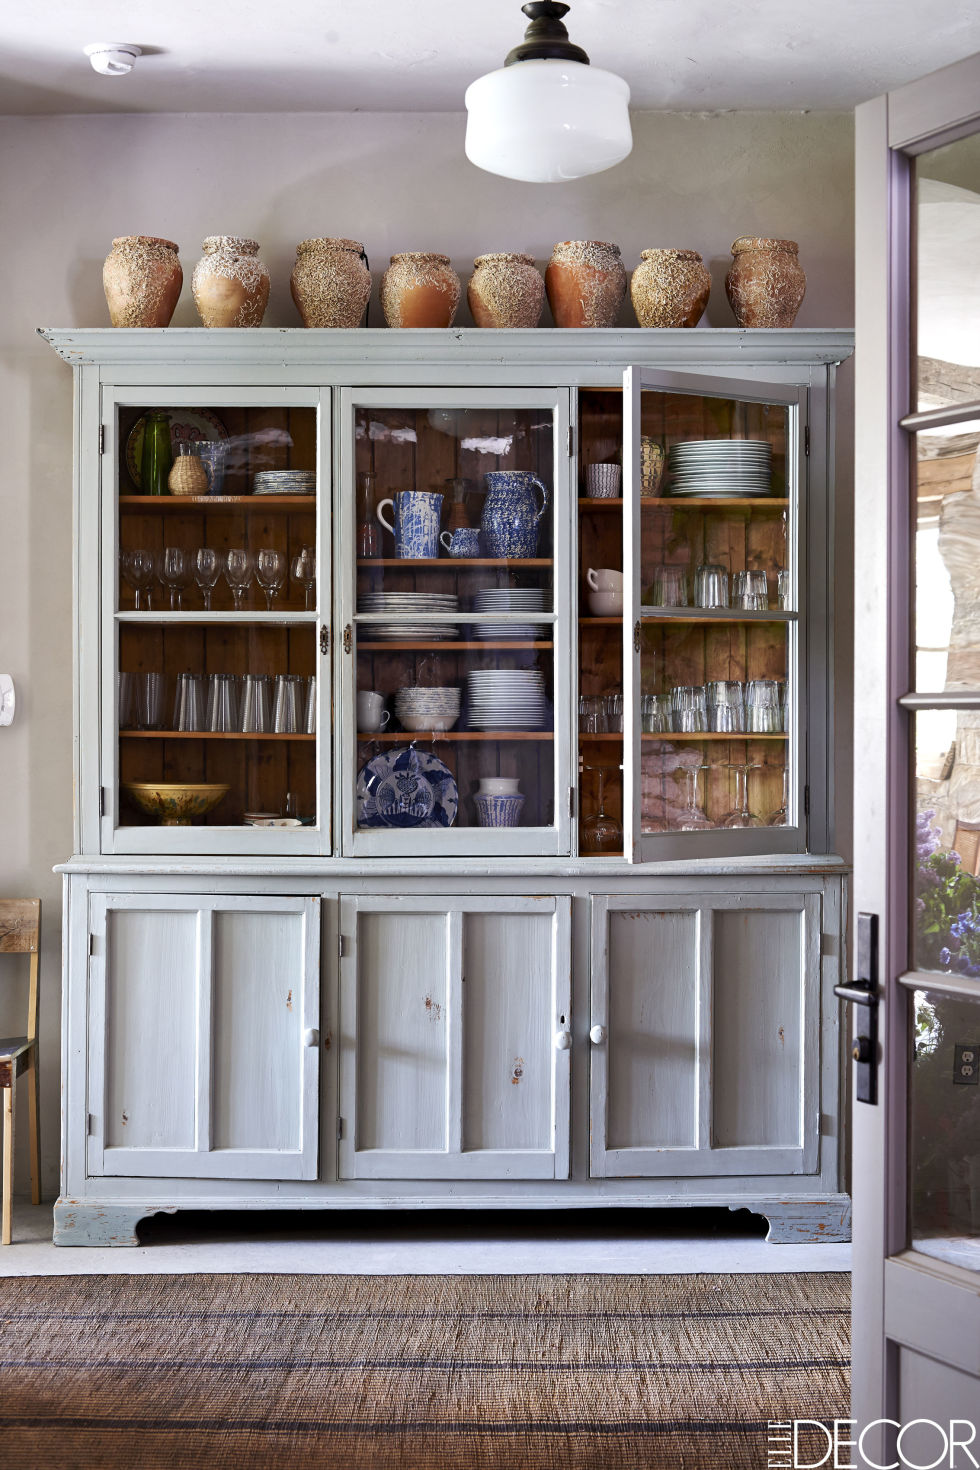 Virginia_Tupker_Mikkel_Vang_Bedfor_New_York_Carriage_House_Louise_Dockery_Paper_and_Moon_china_hutch.jpg